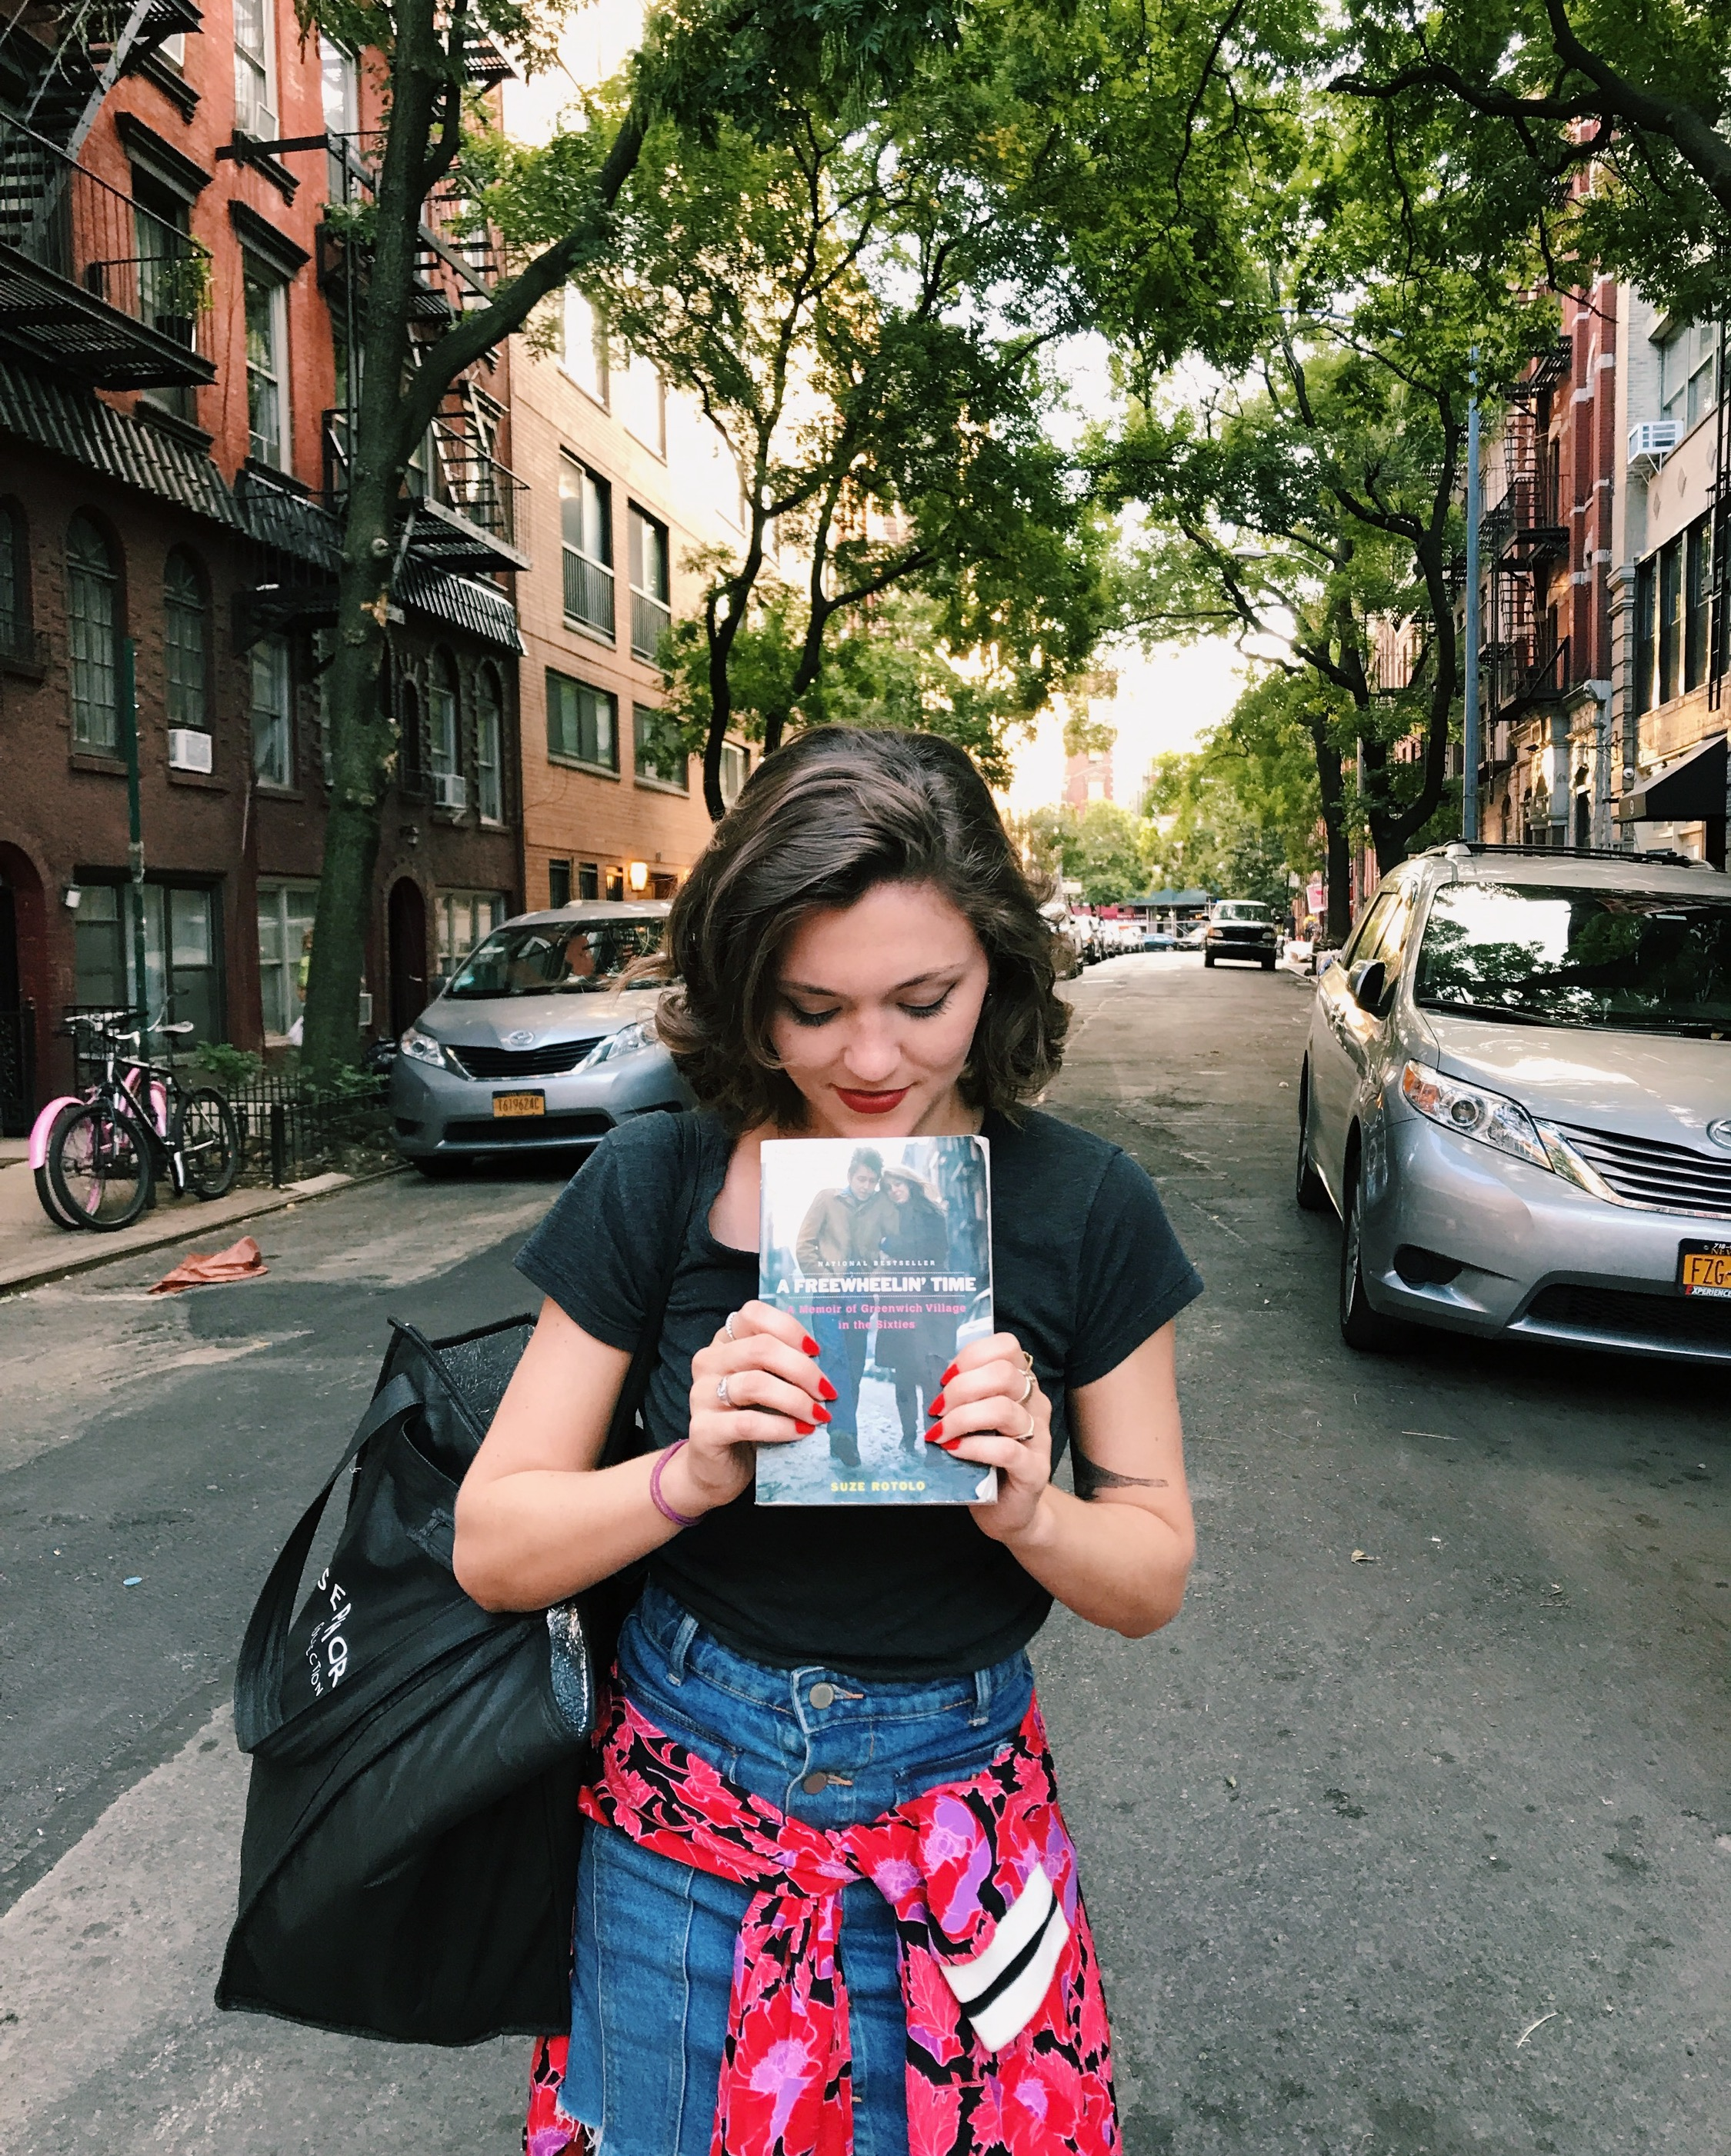 When you stumble upon the Freewheelin' street with book in hand, you take the cheesy picture.